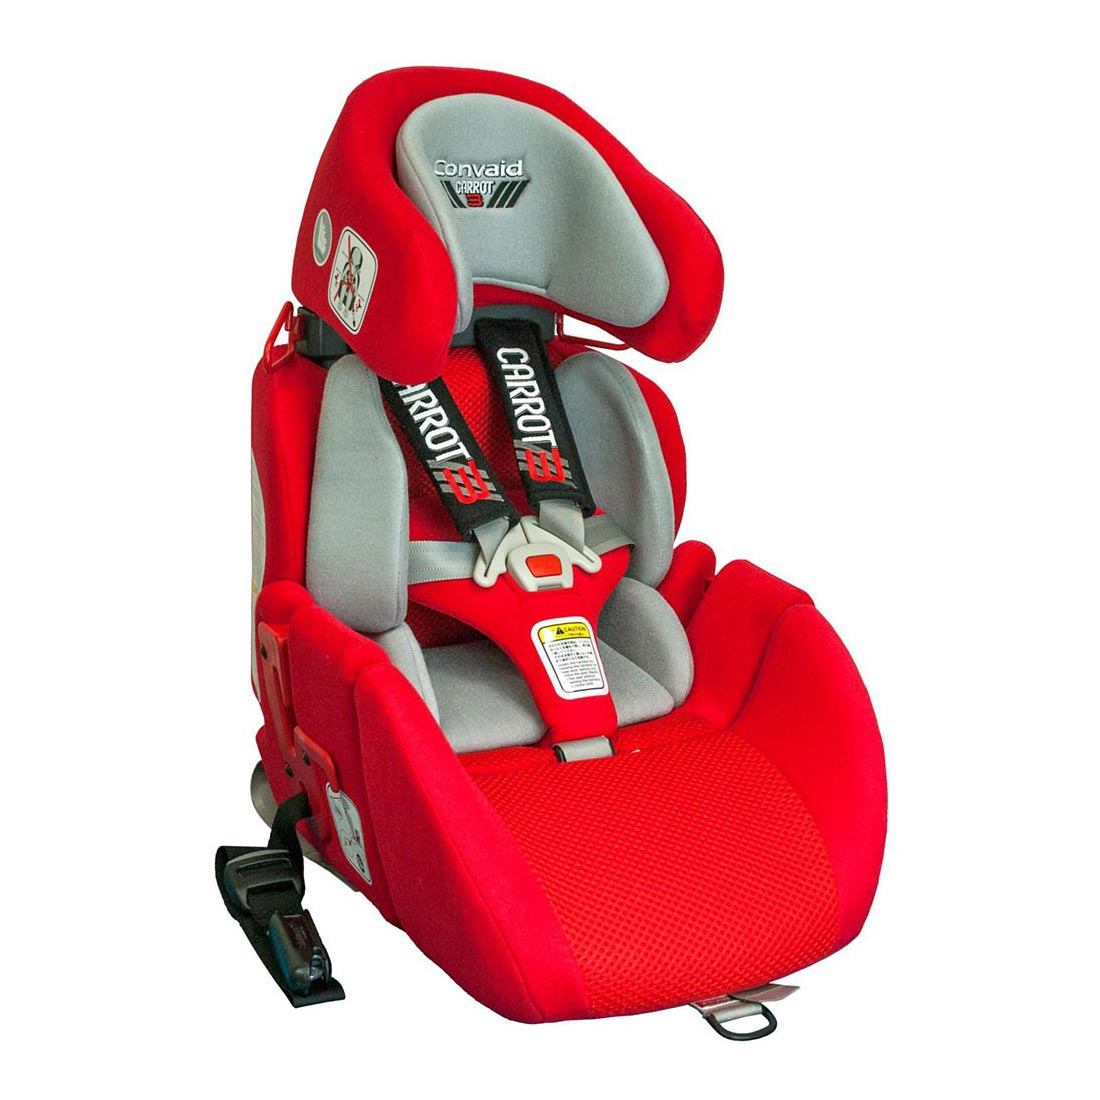 Convaid Carrot 3 car seat